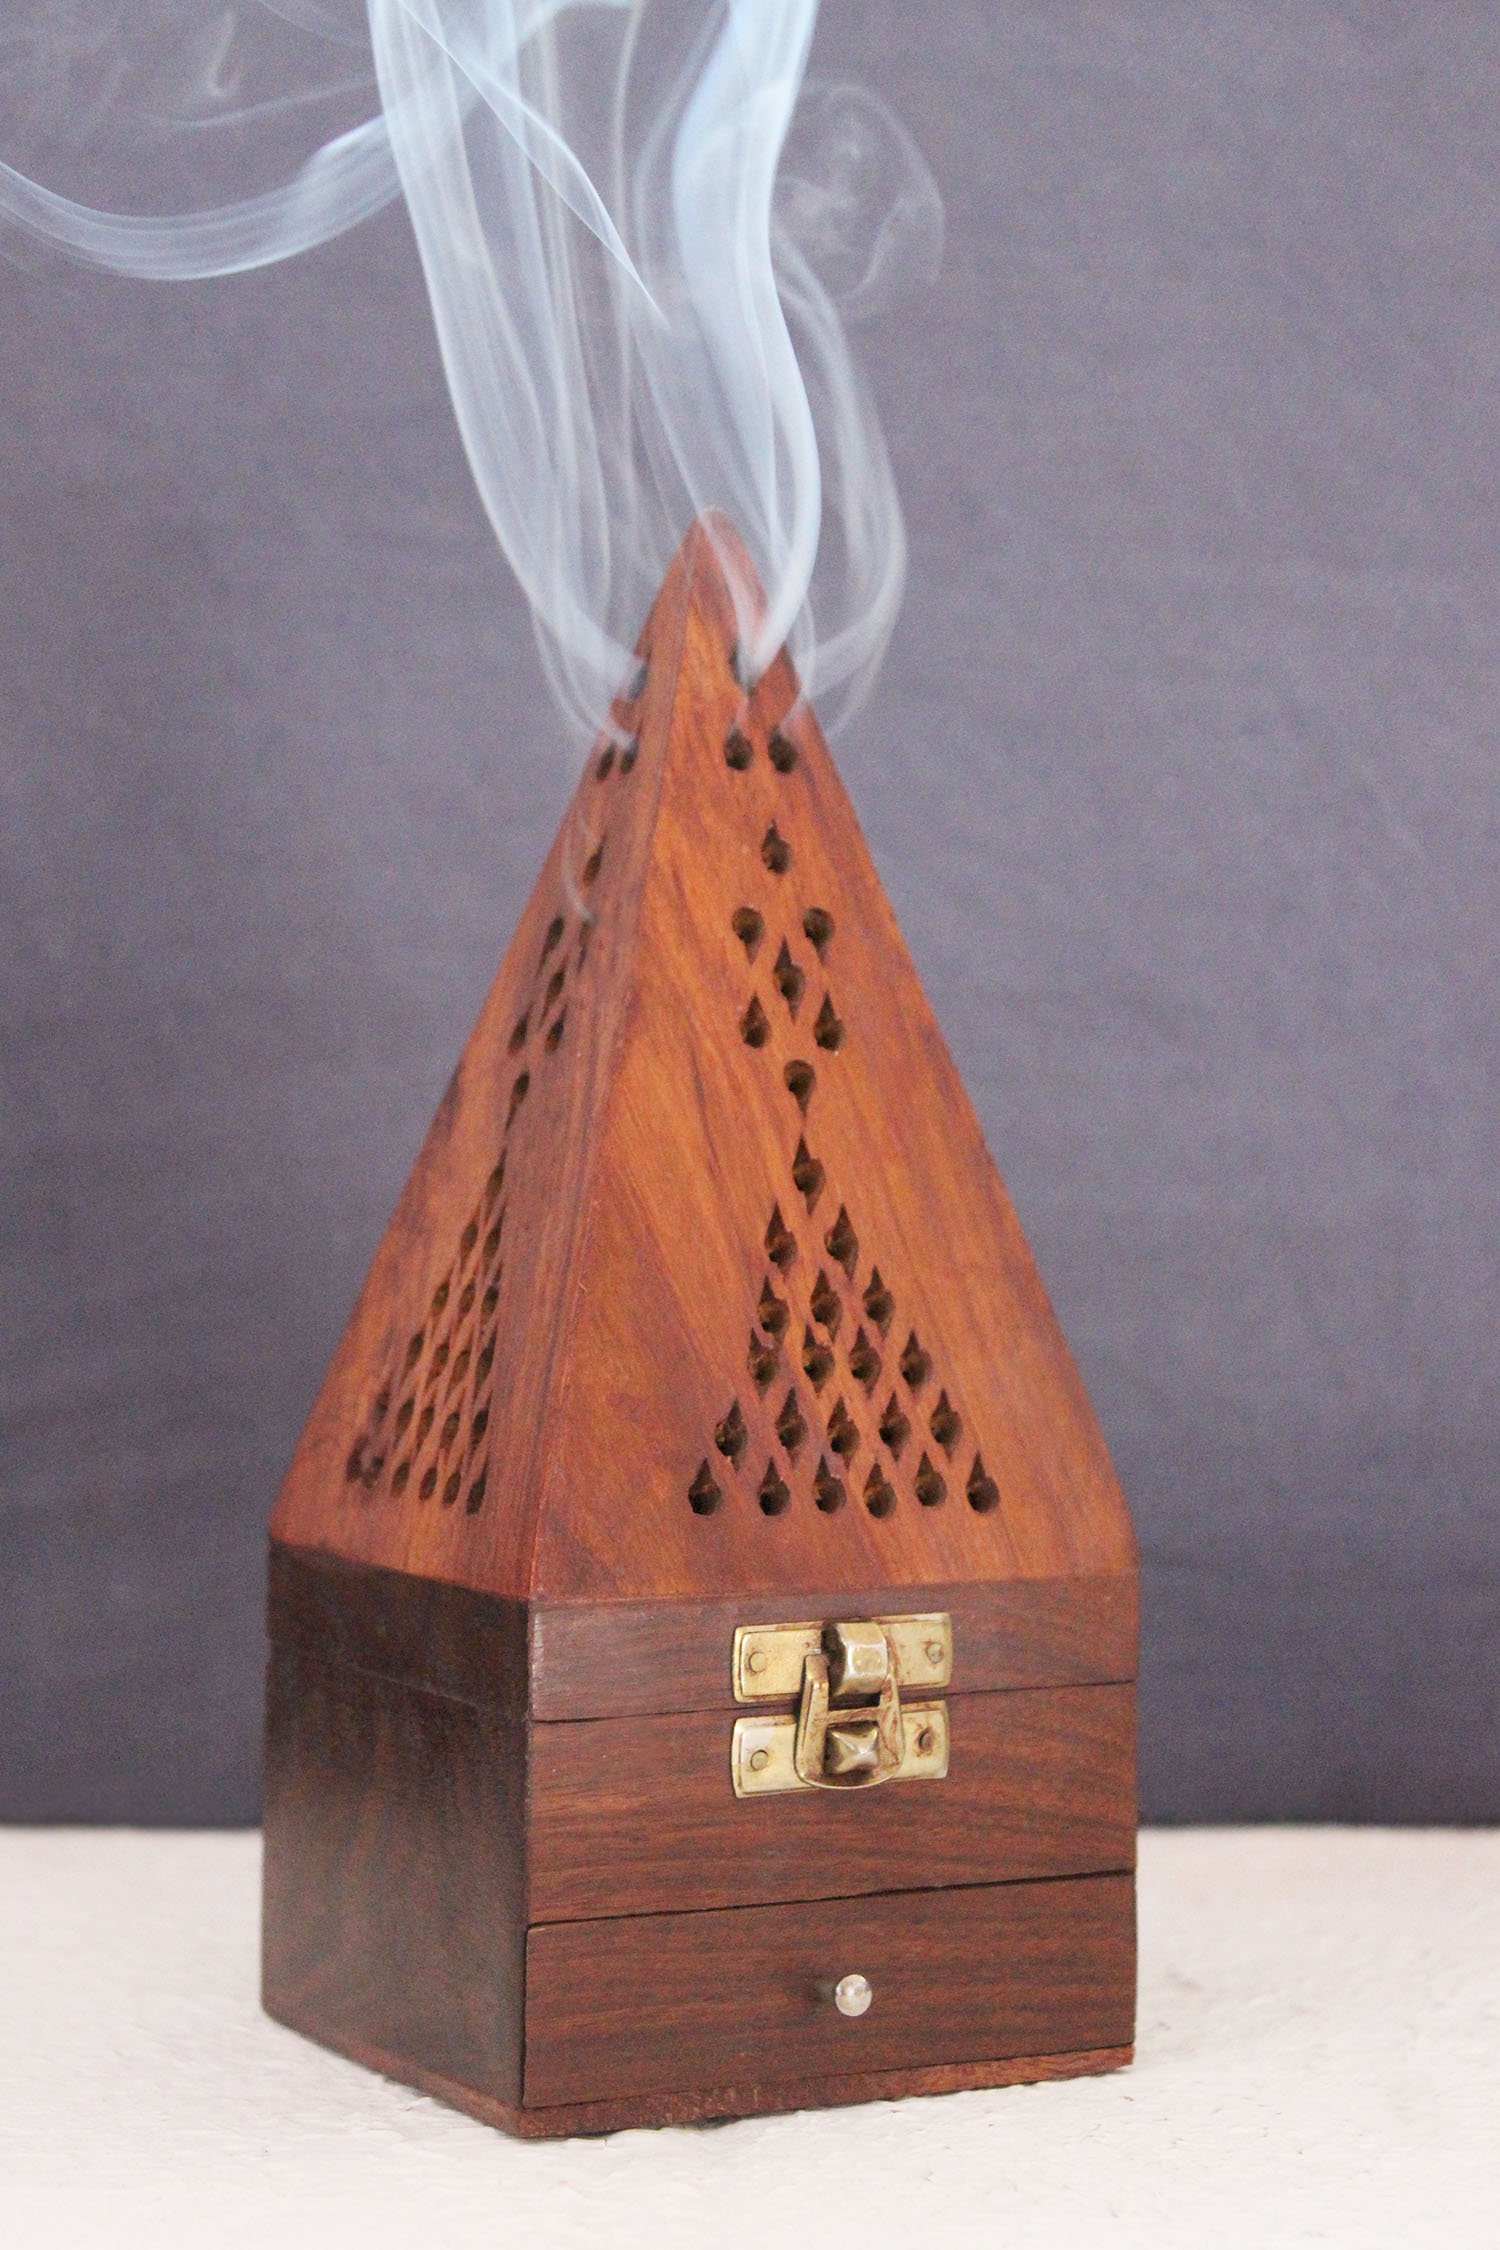 Angled Roof Top Out Ash Catcher Govinda Carved Wood Square Tower Incense Burner w//Slide